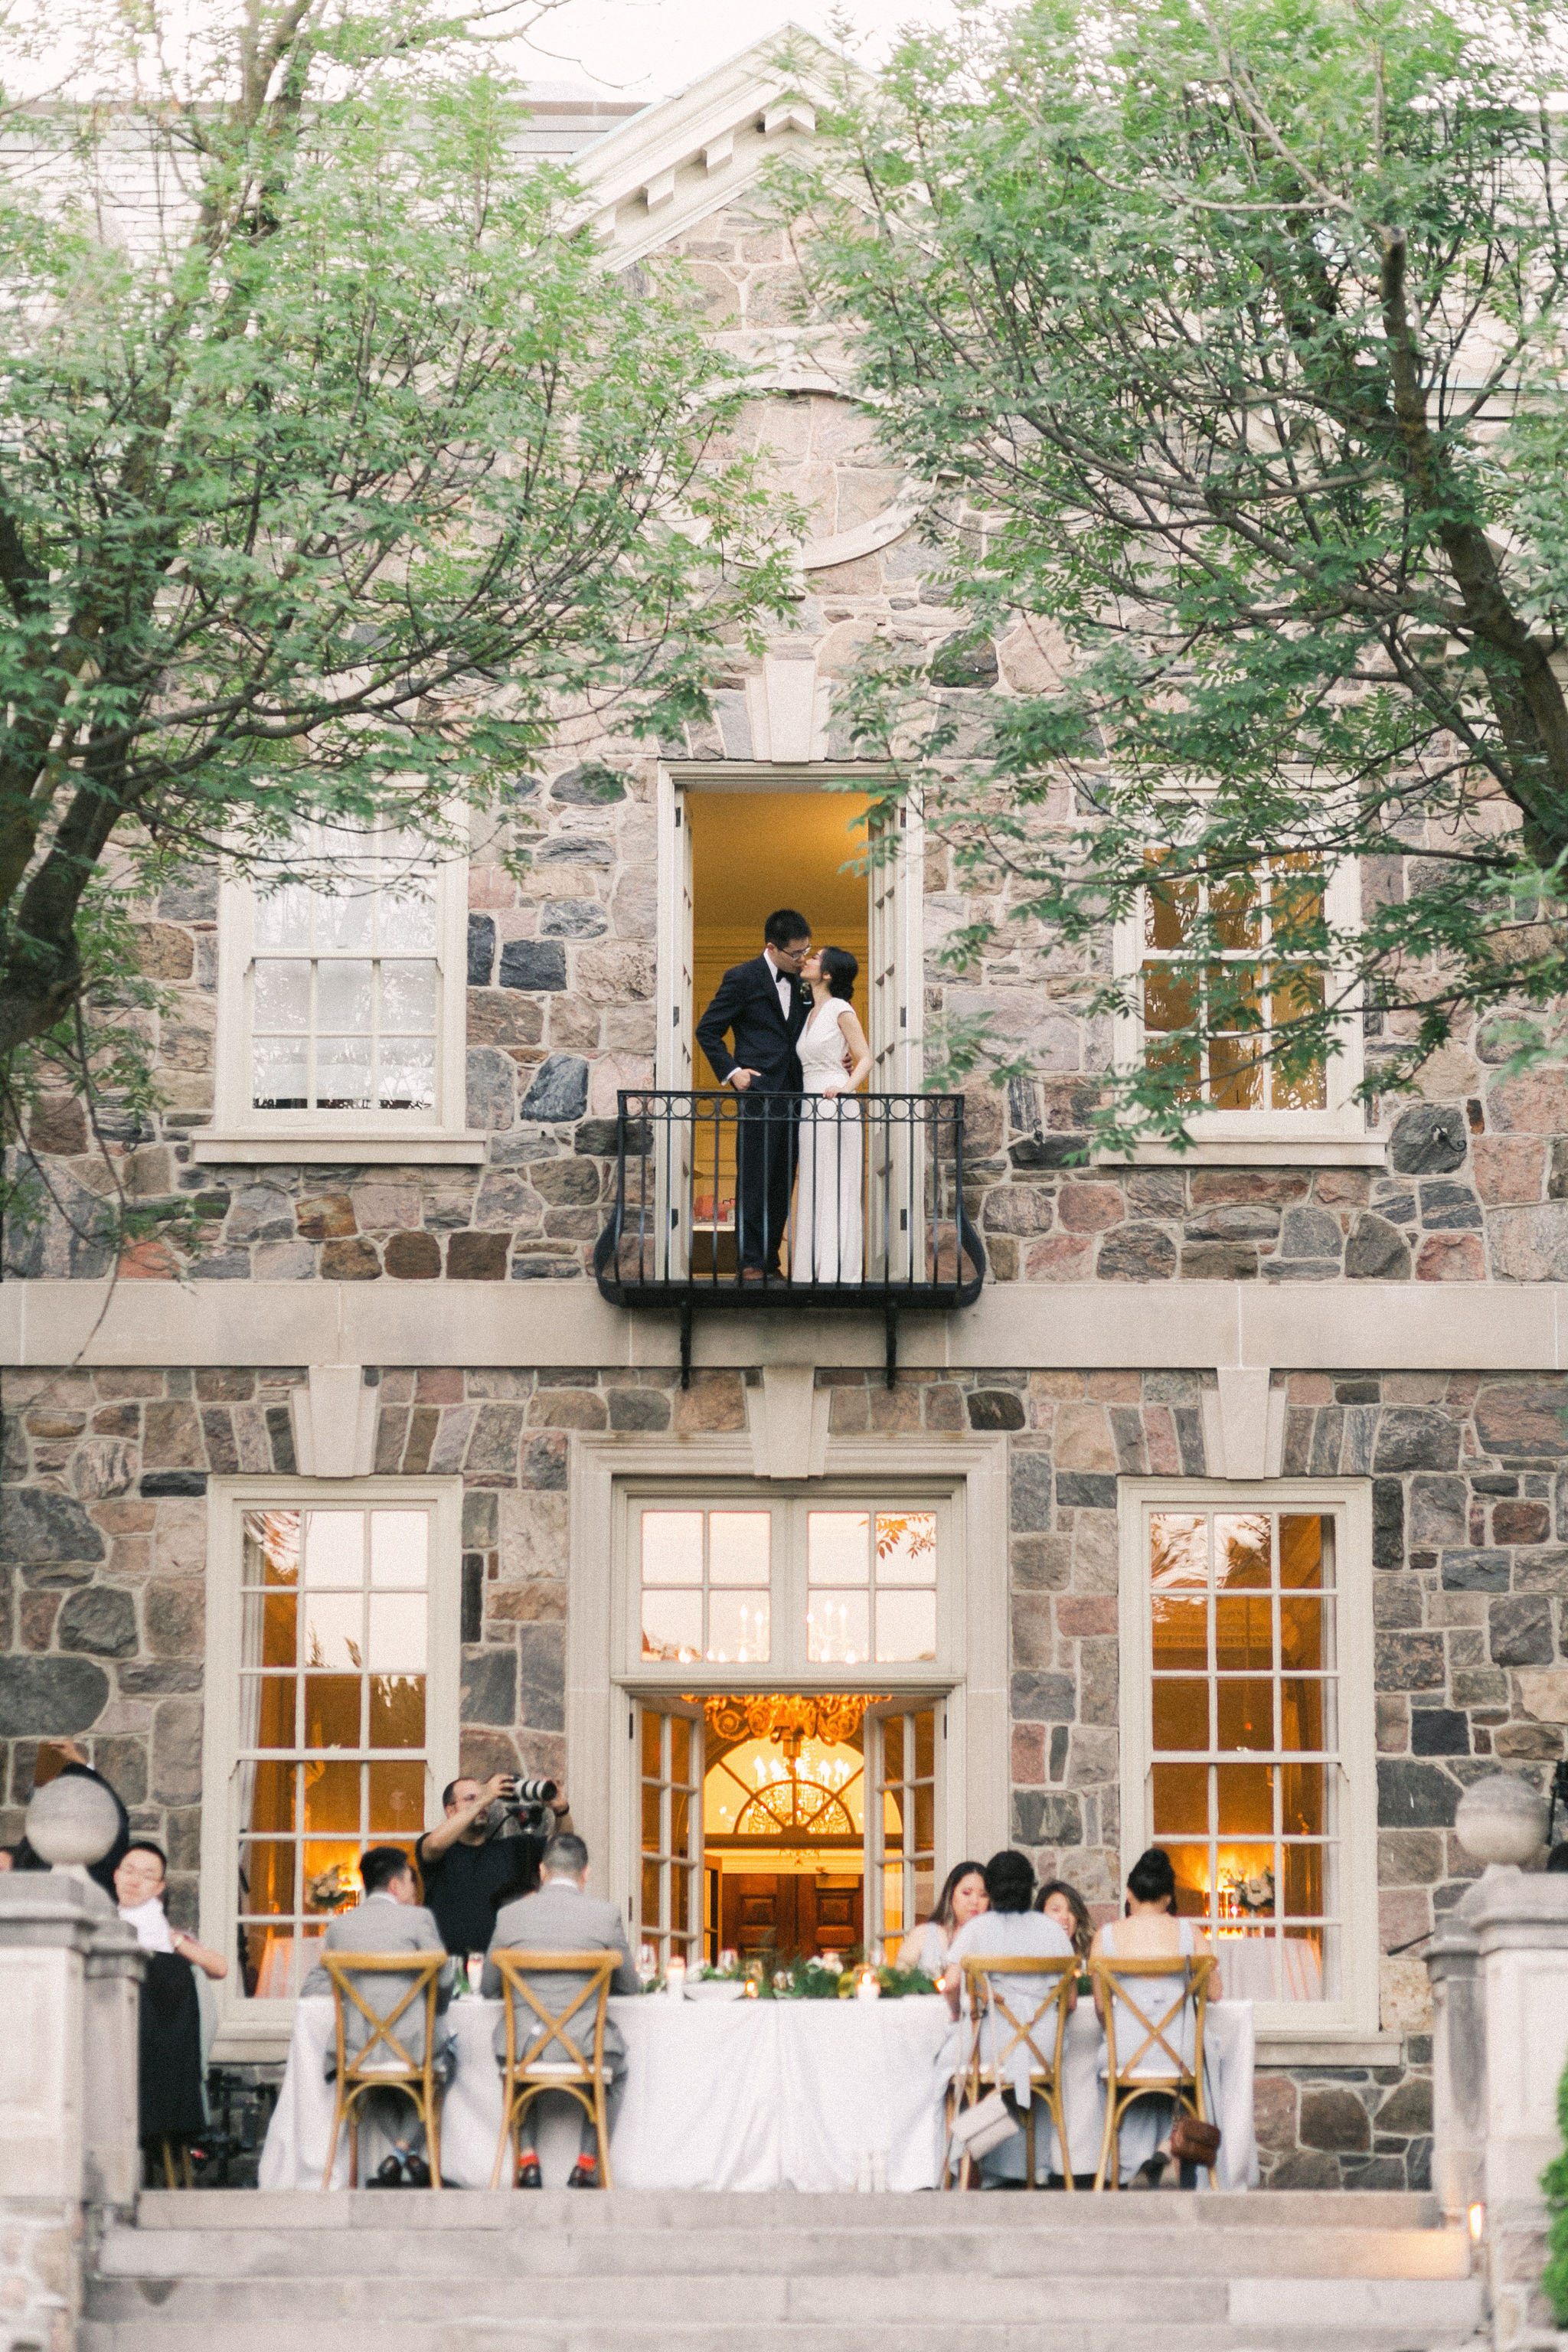 Graydon Hall Garden Wedding - V + DCOMING SOON